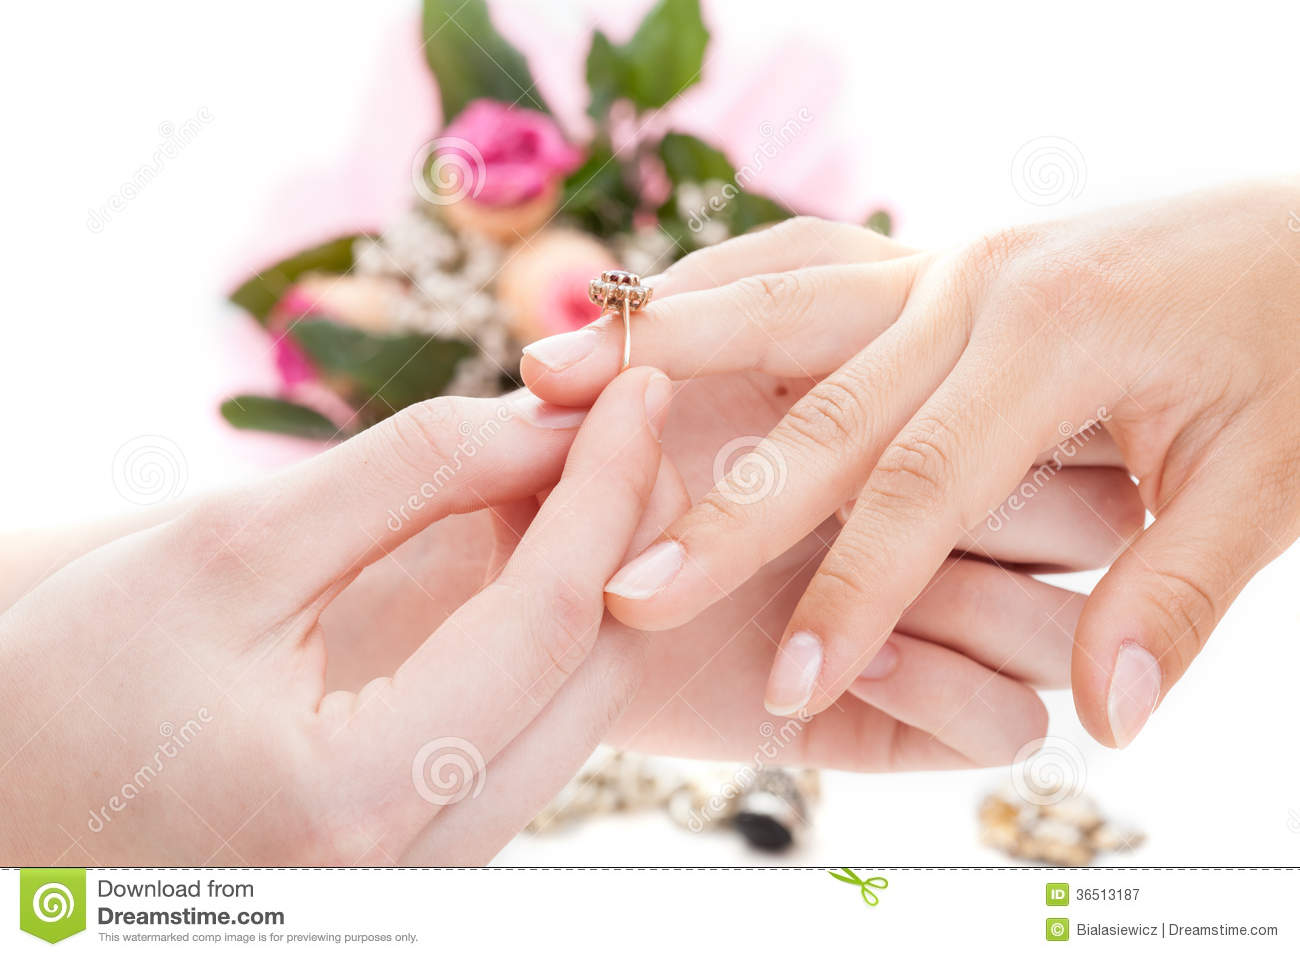 Put a ring on it stock image. Image of diamond, flowers - 36513187